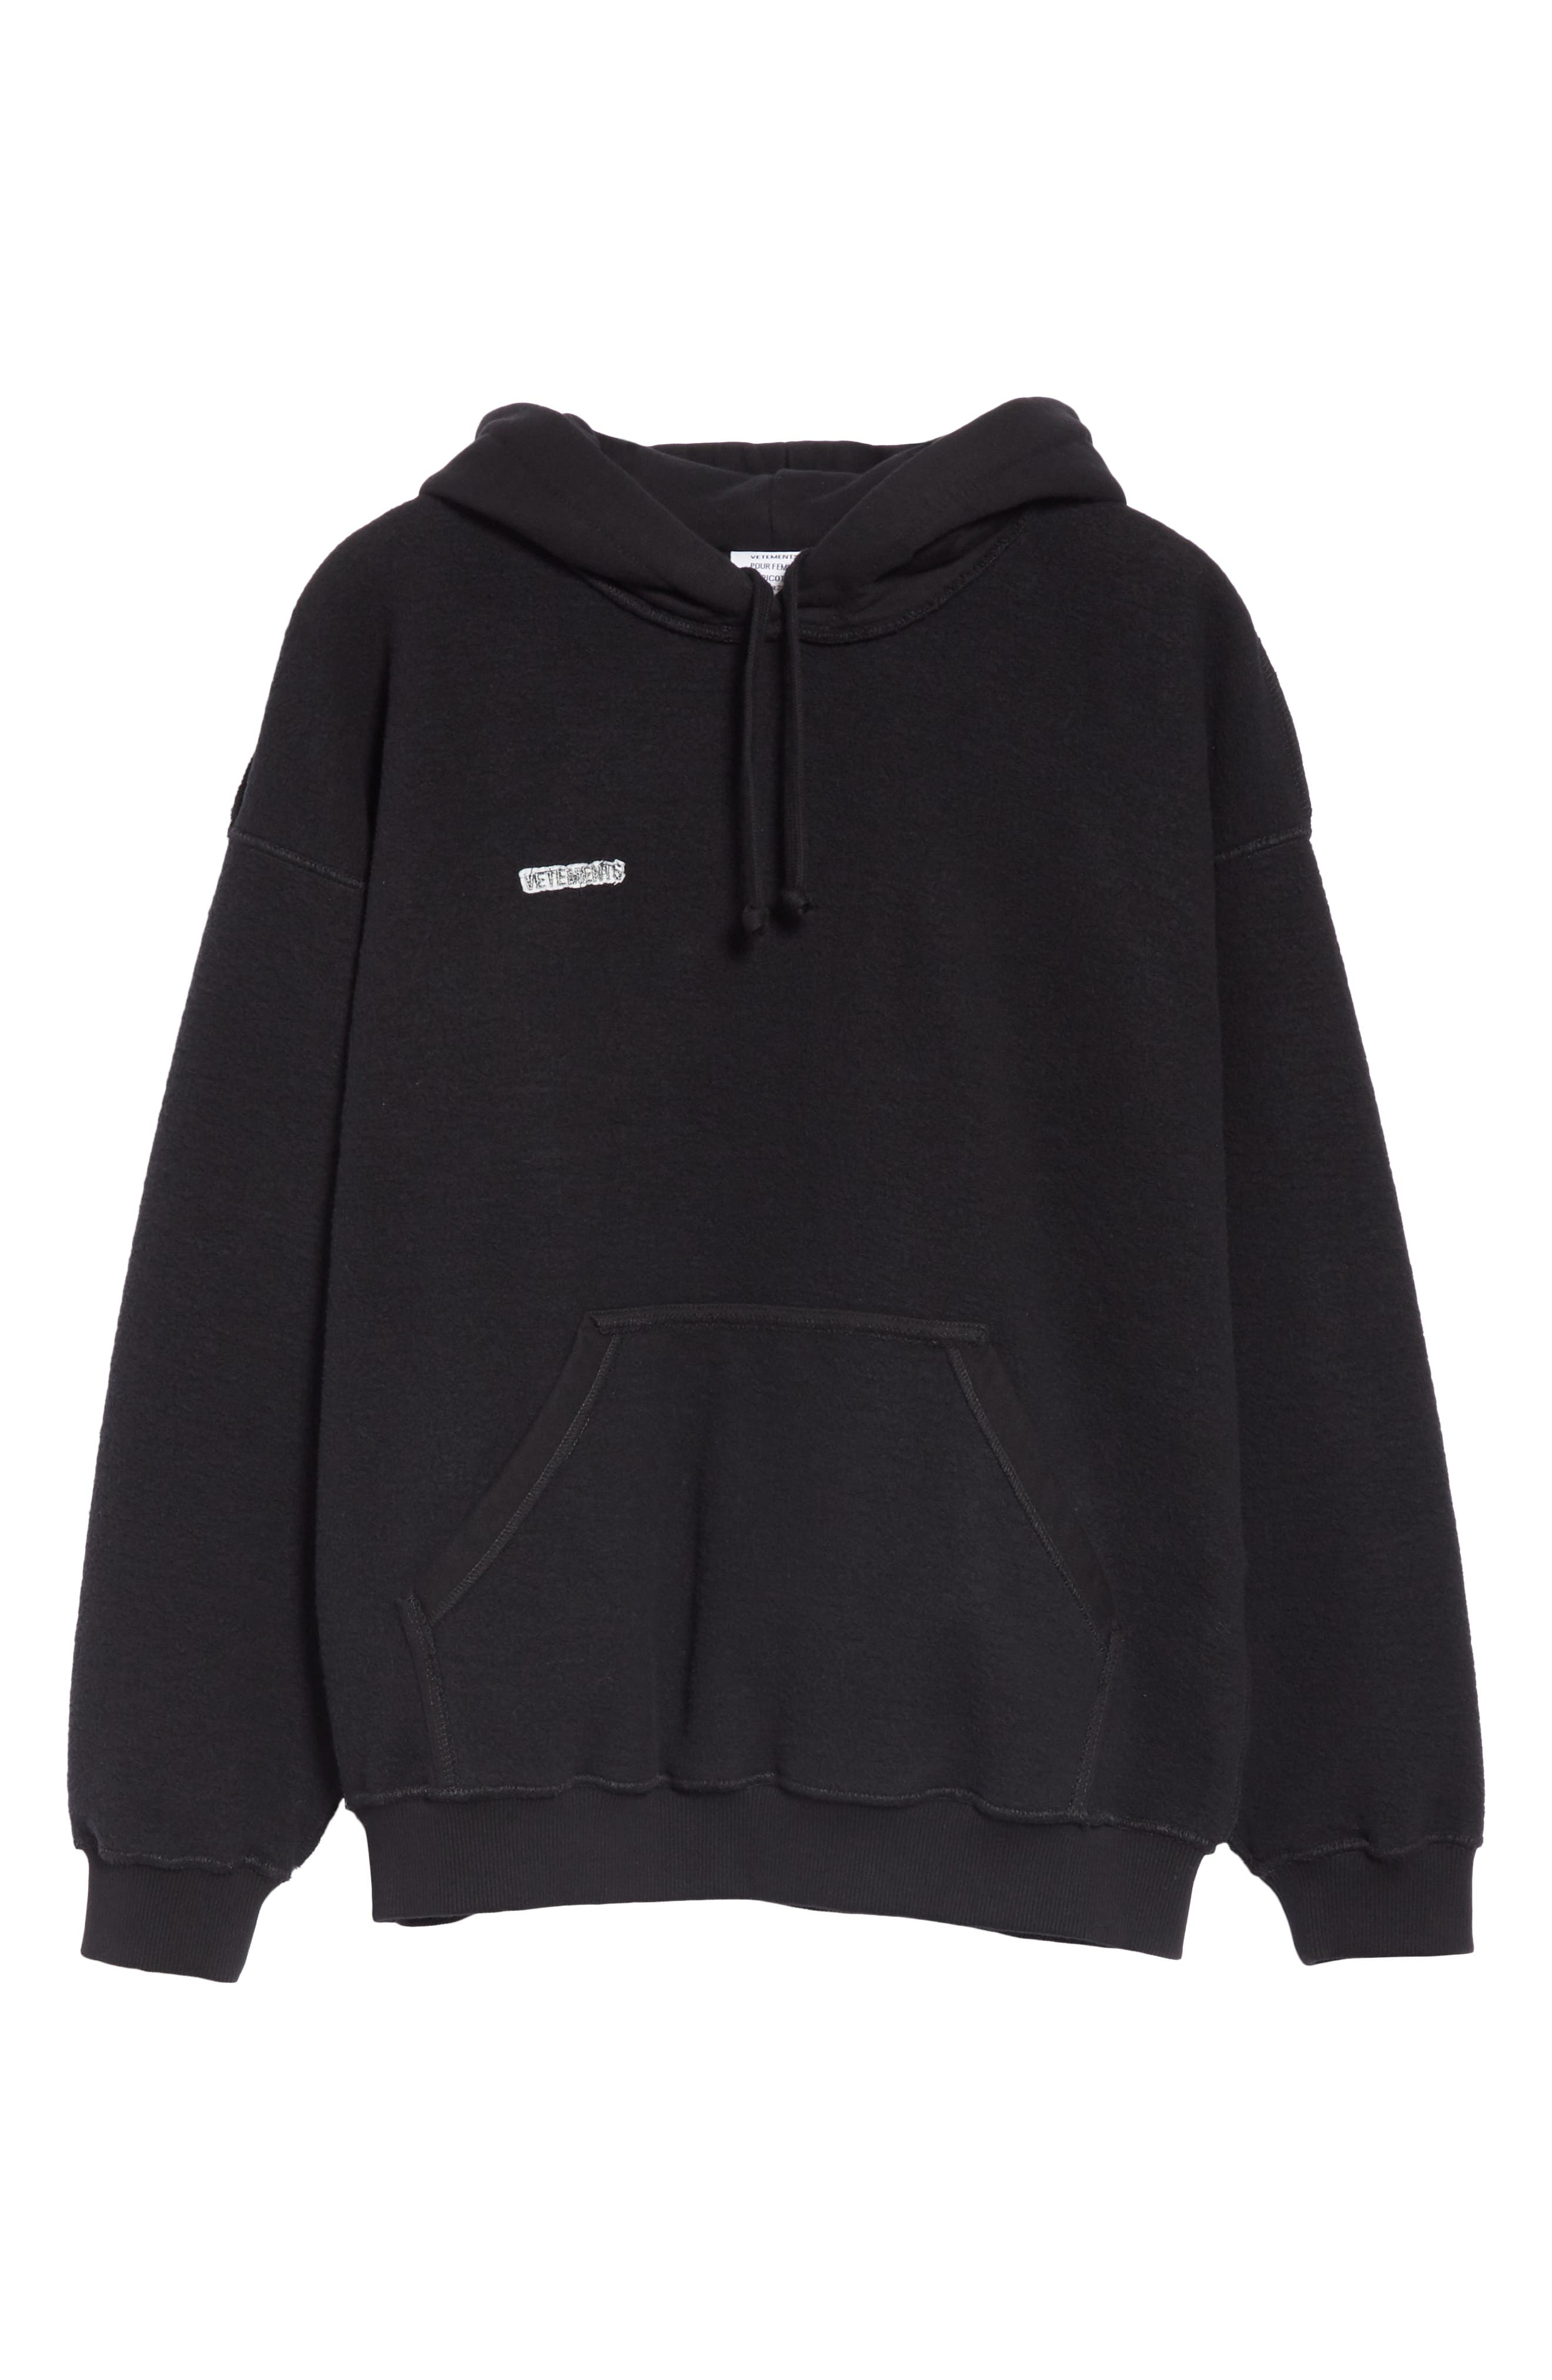 Inside-Out Hoodie,                             Alternate thumbnail 6, color,                             BLACK